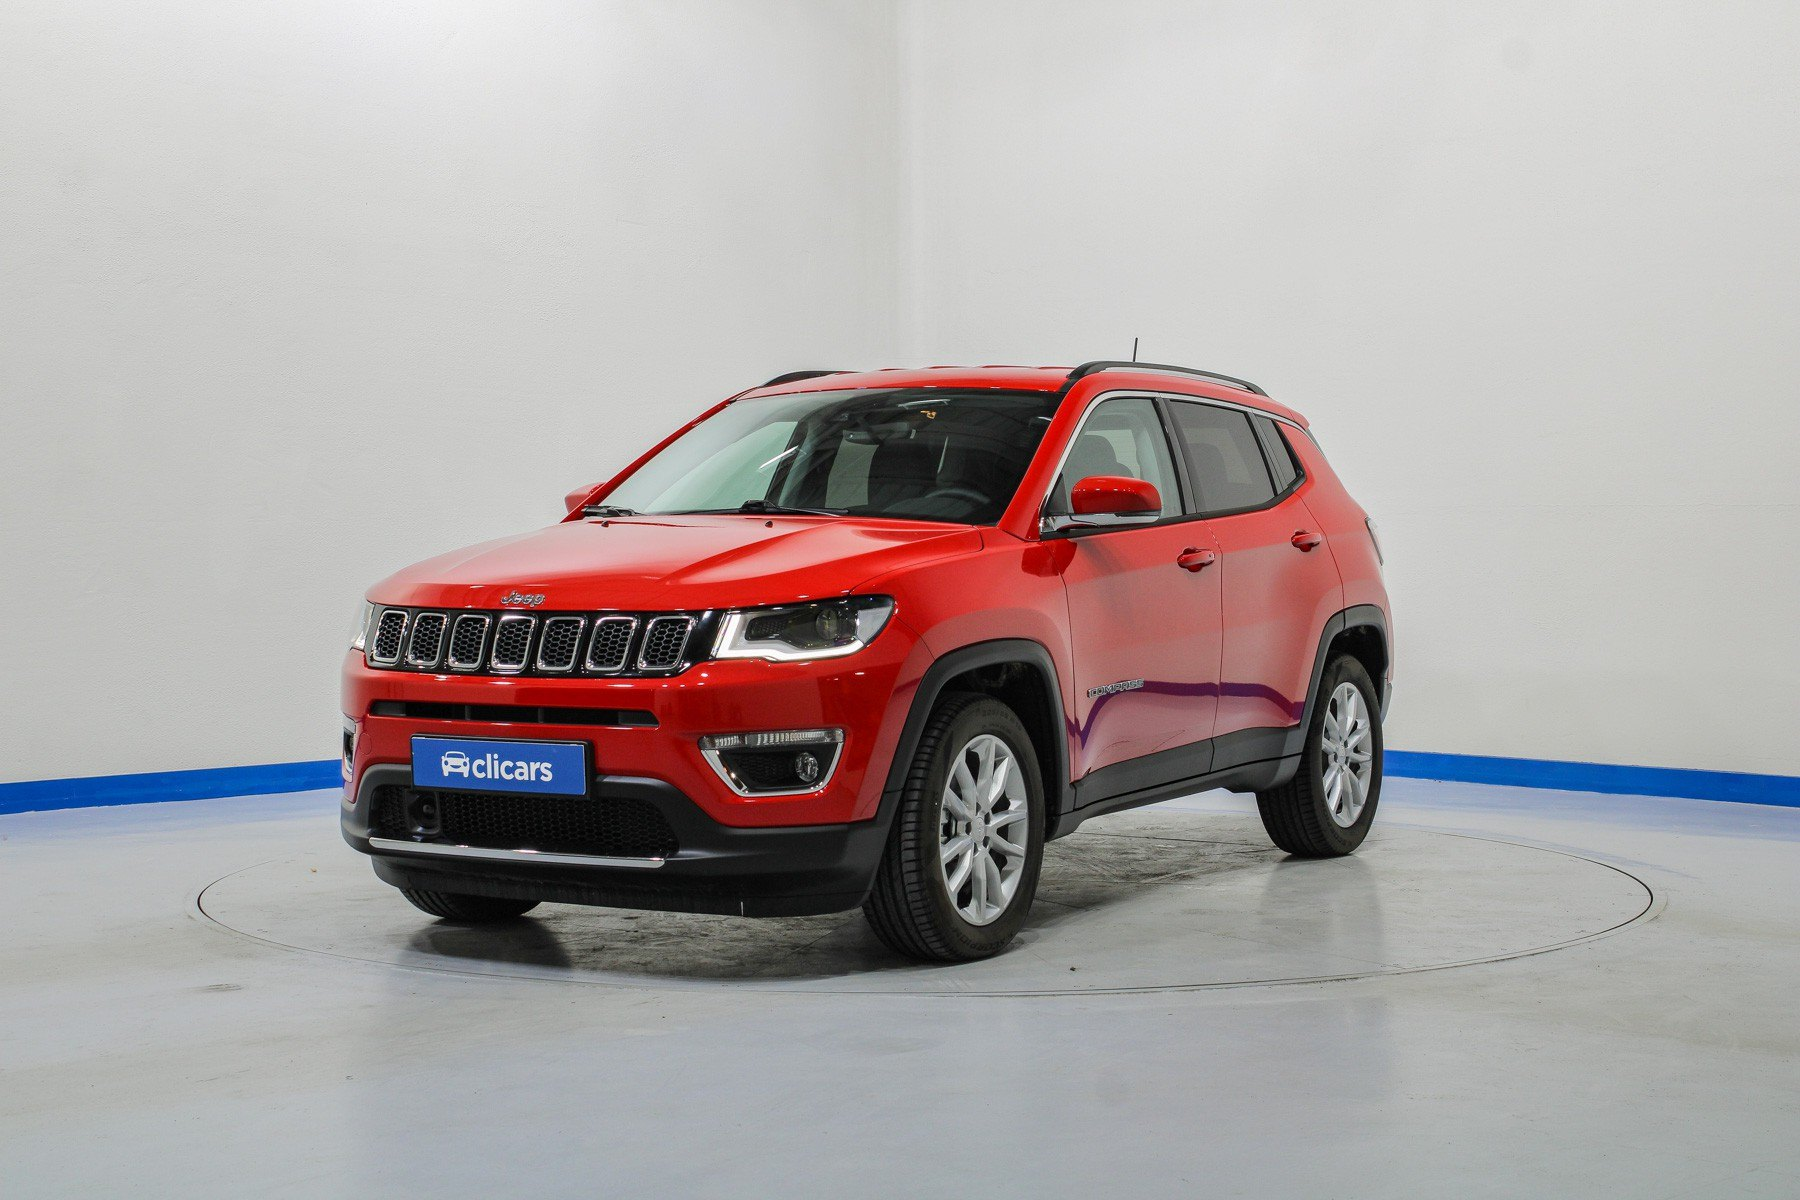 Jeep Compass Gasolina 1.3 Gse T4 110kW (150CV) Limited DCT FWD 1